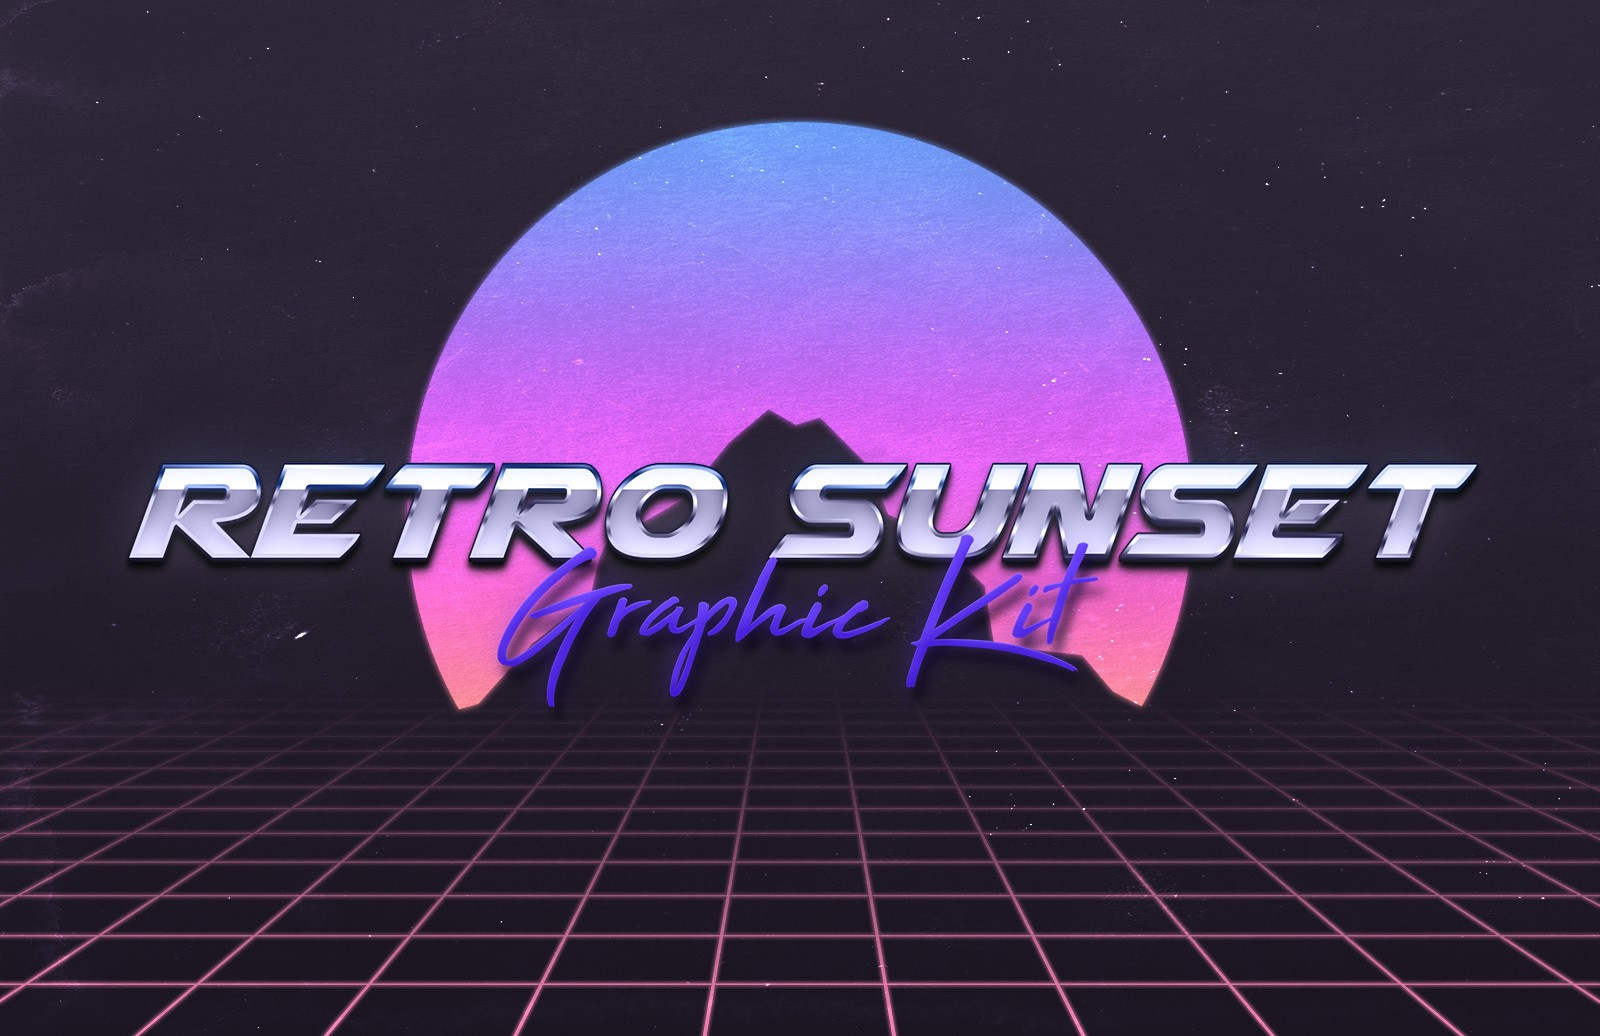 Retro 80s Sunset Graphic Kit